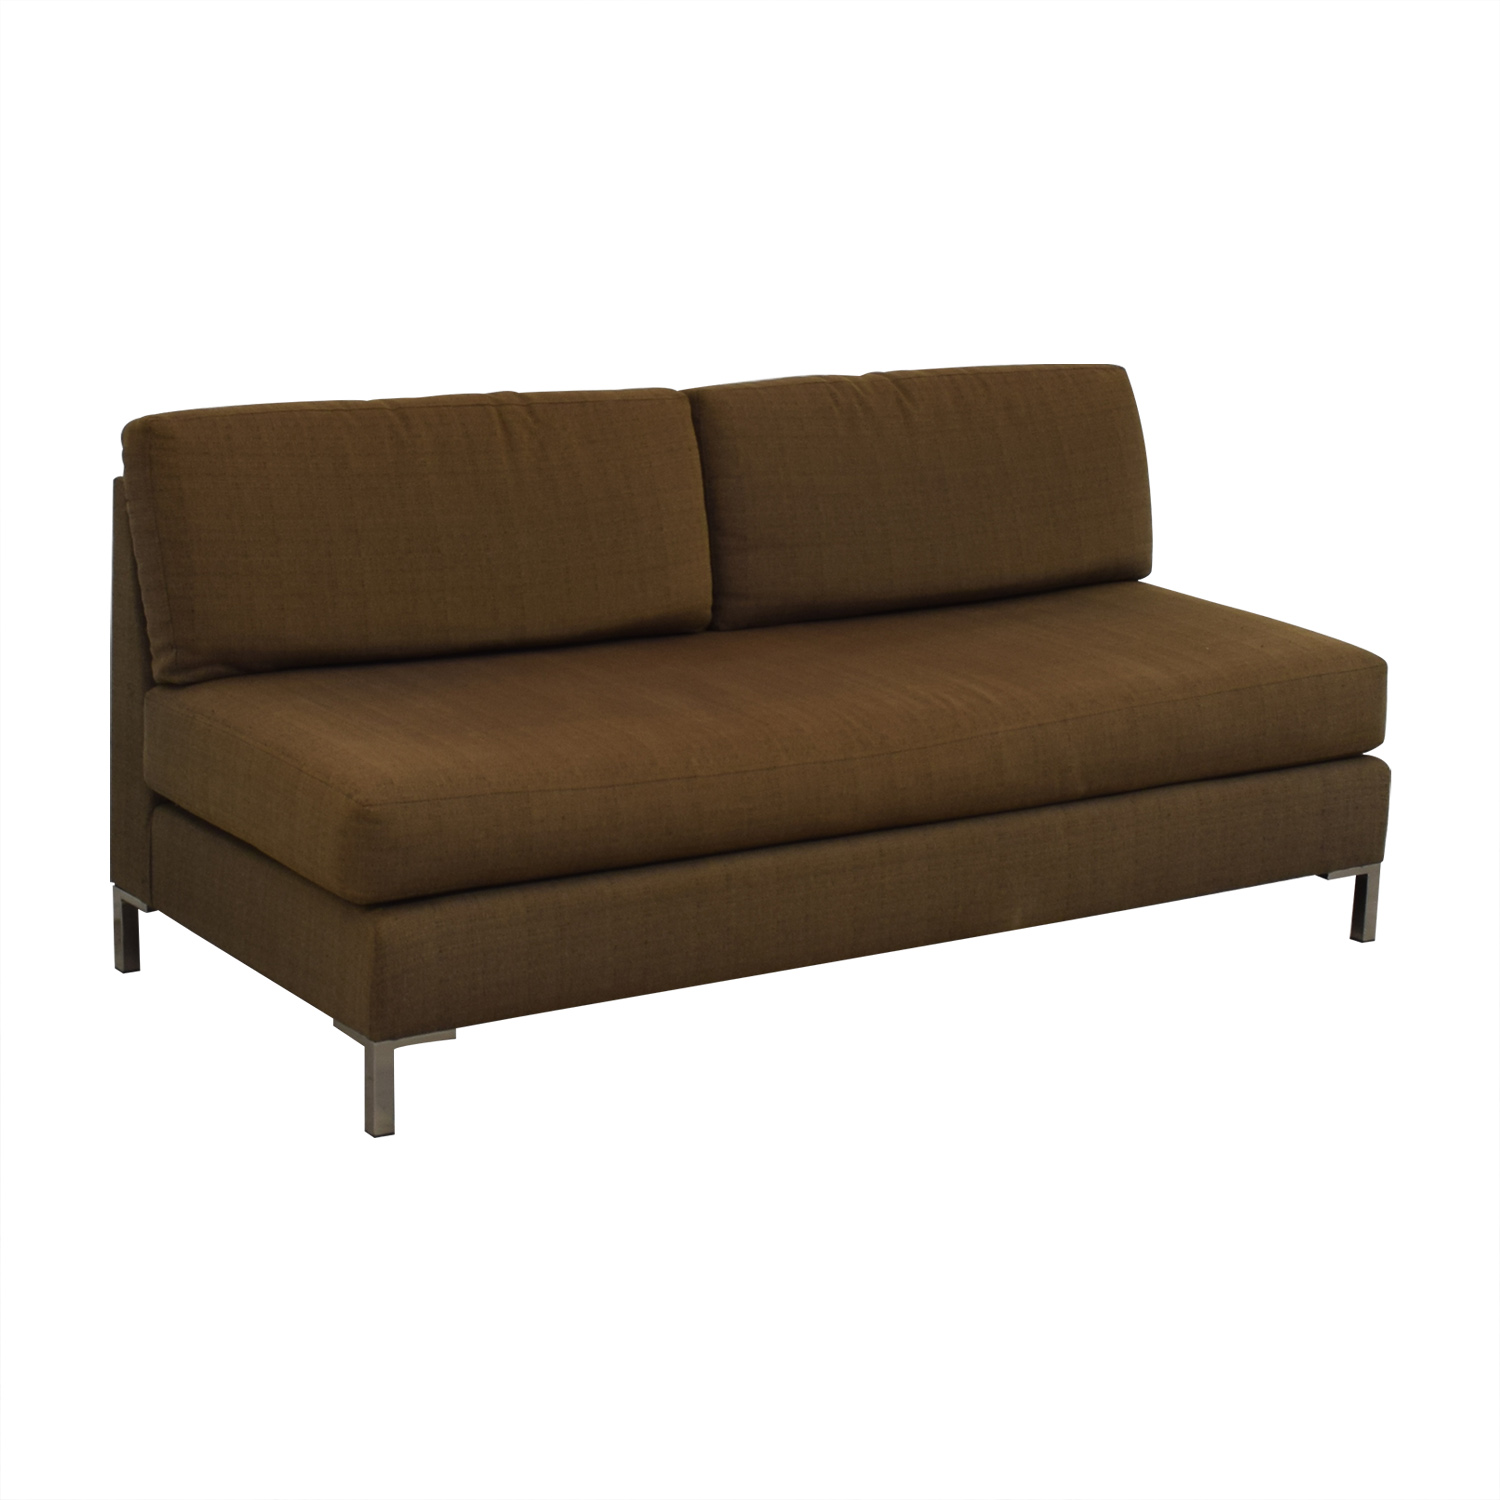 West Elm West Elm Armless Sofa price